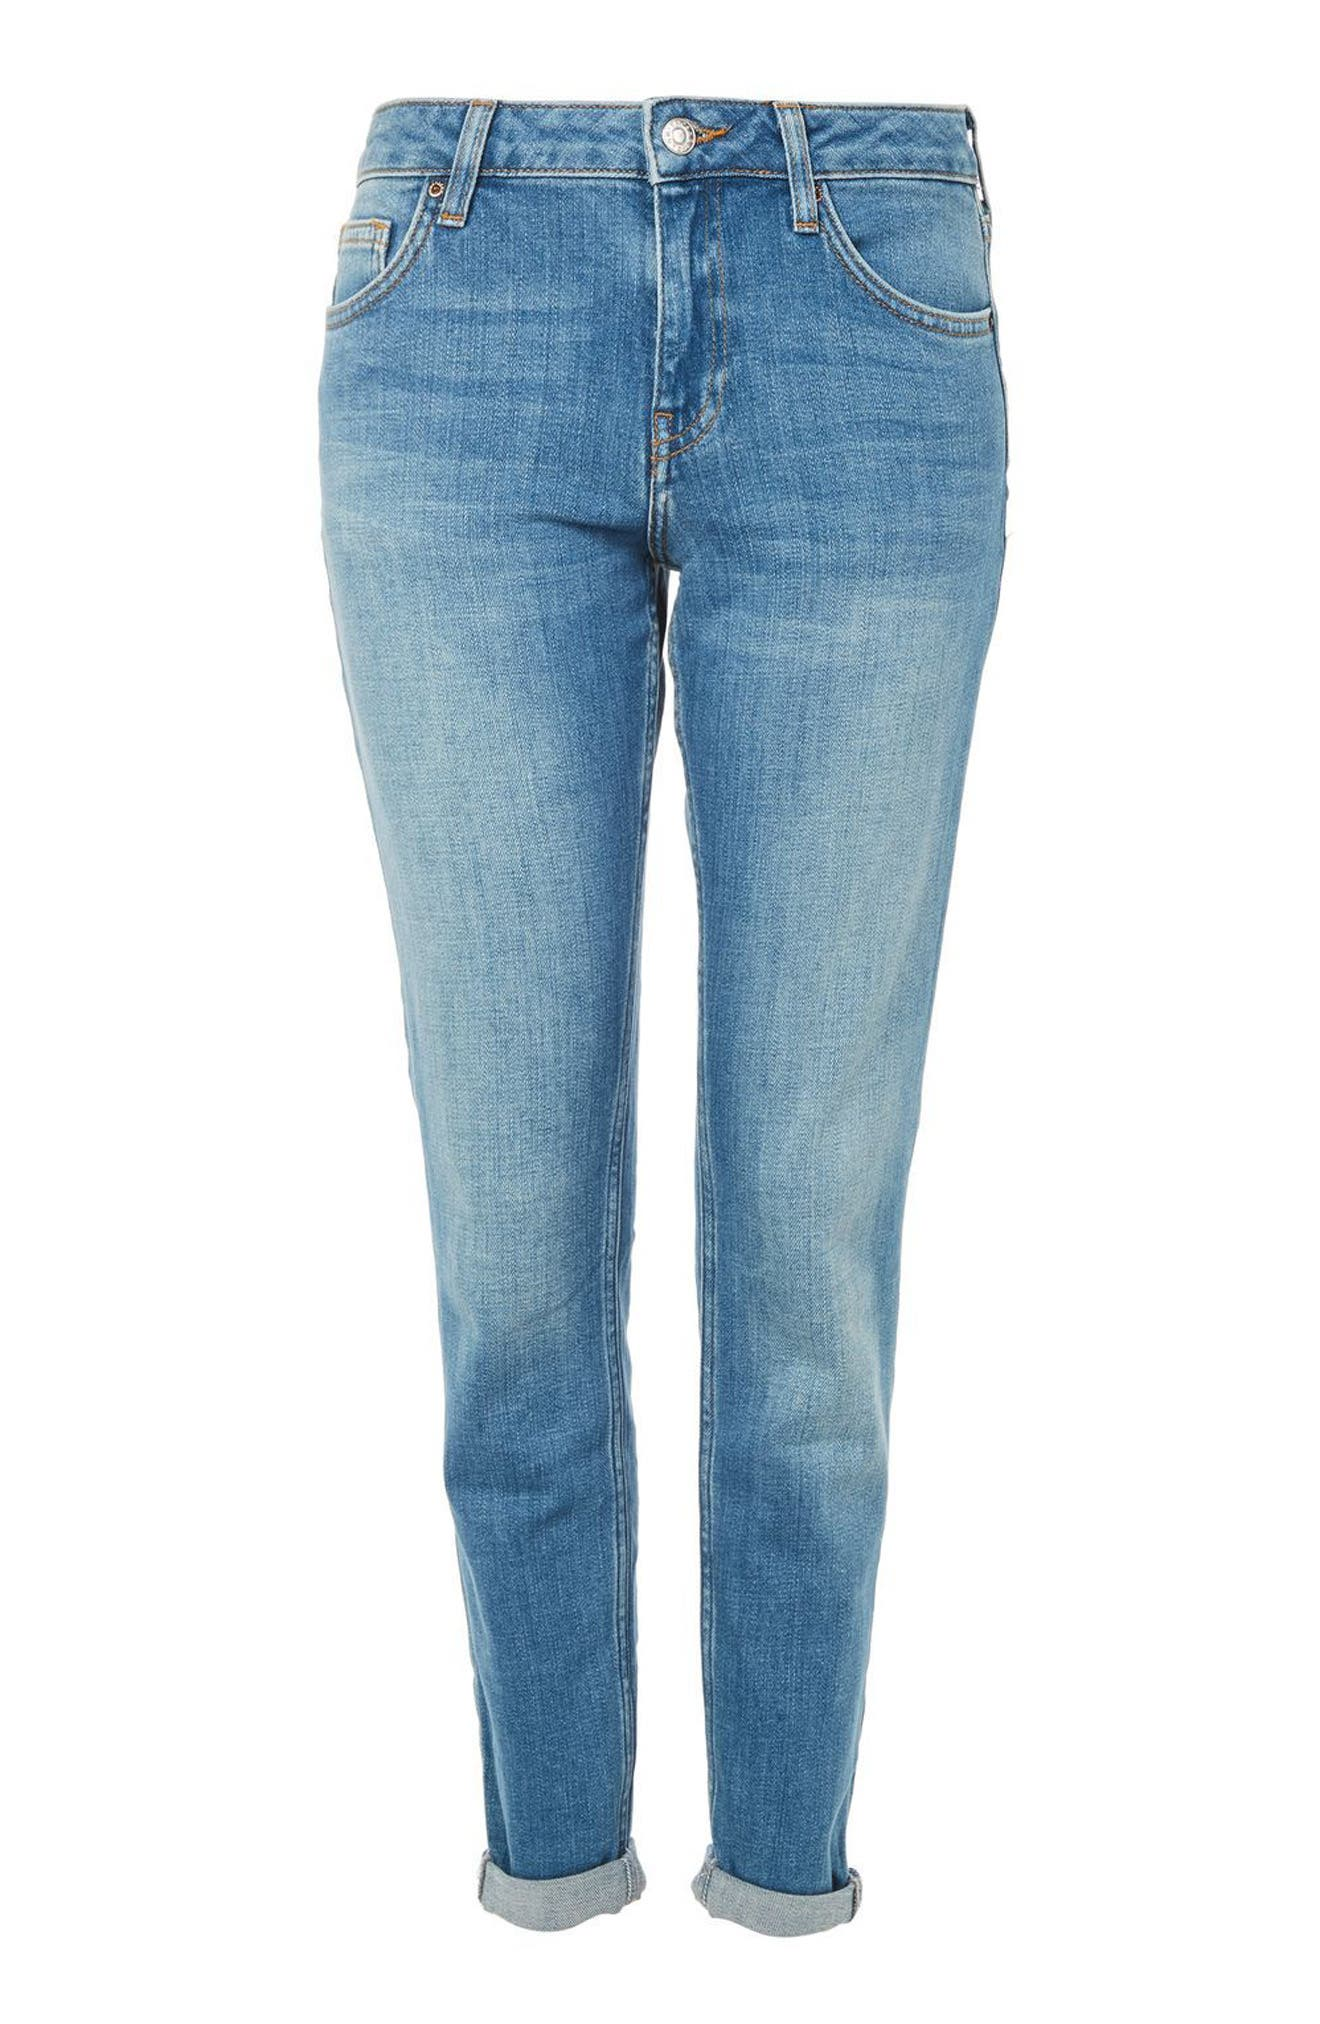 Alternate Image 1 Selected - Topshop Lucas Boyfriend Jeans